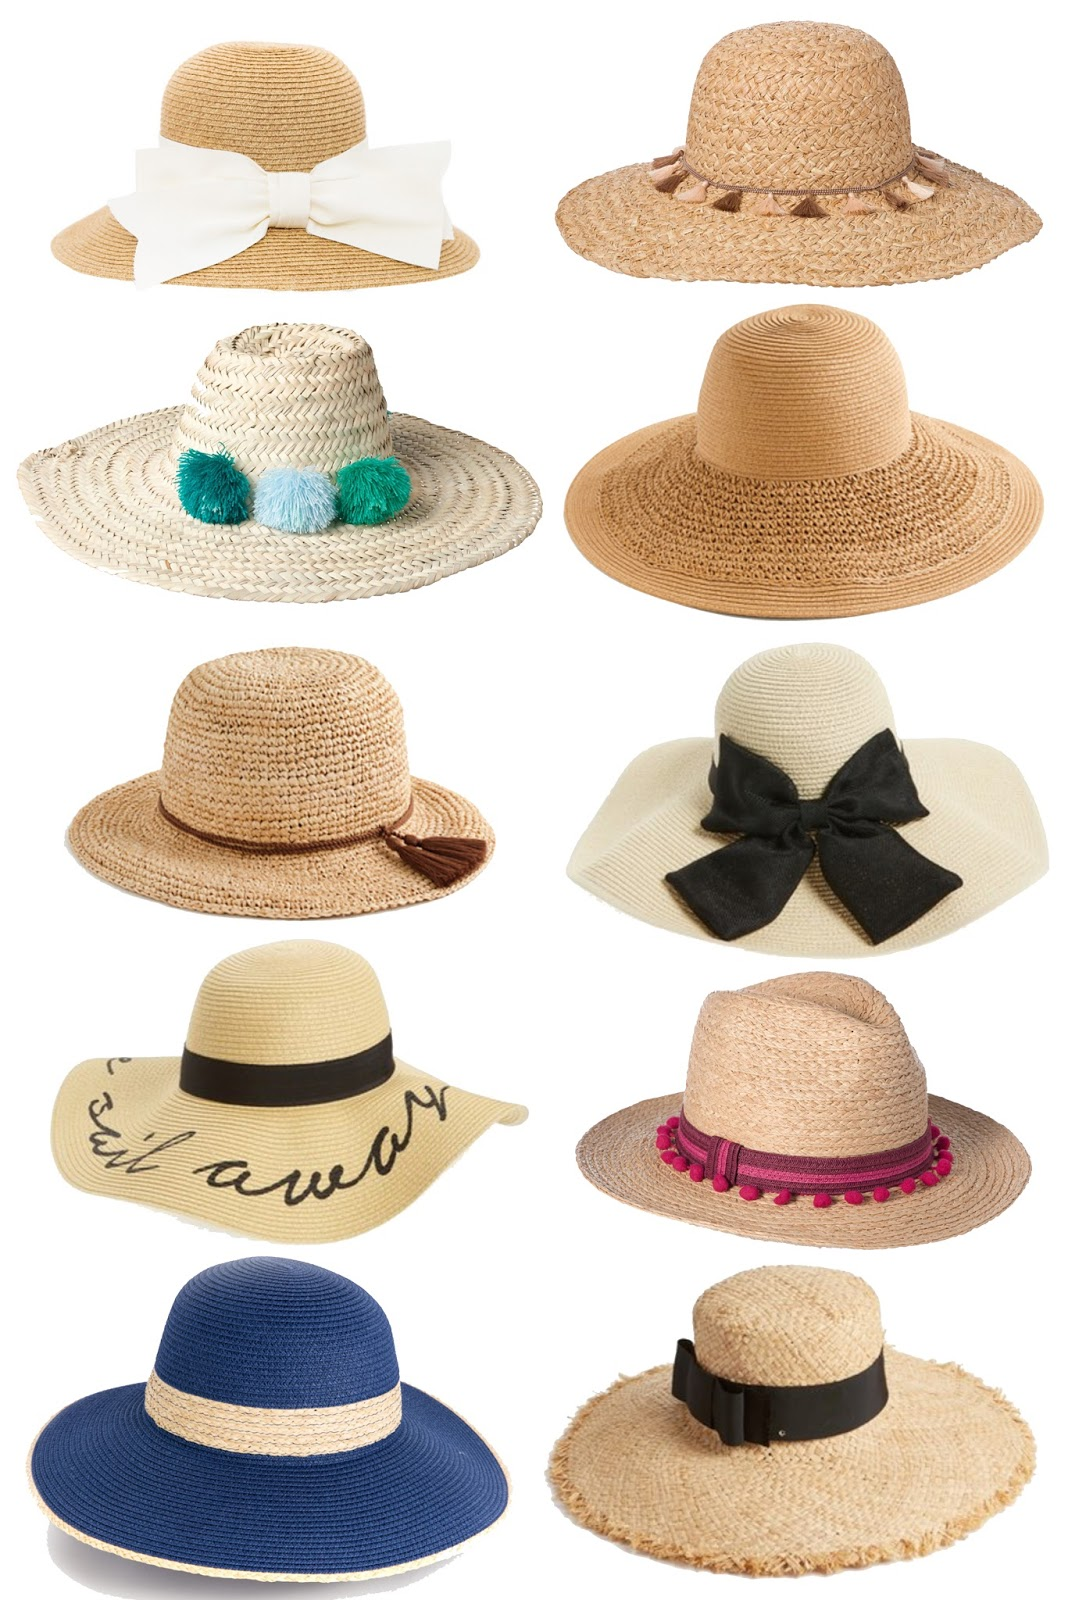 Something Delightful Blog: Favorite Sun Hats